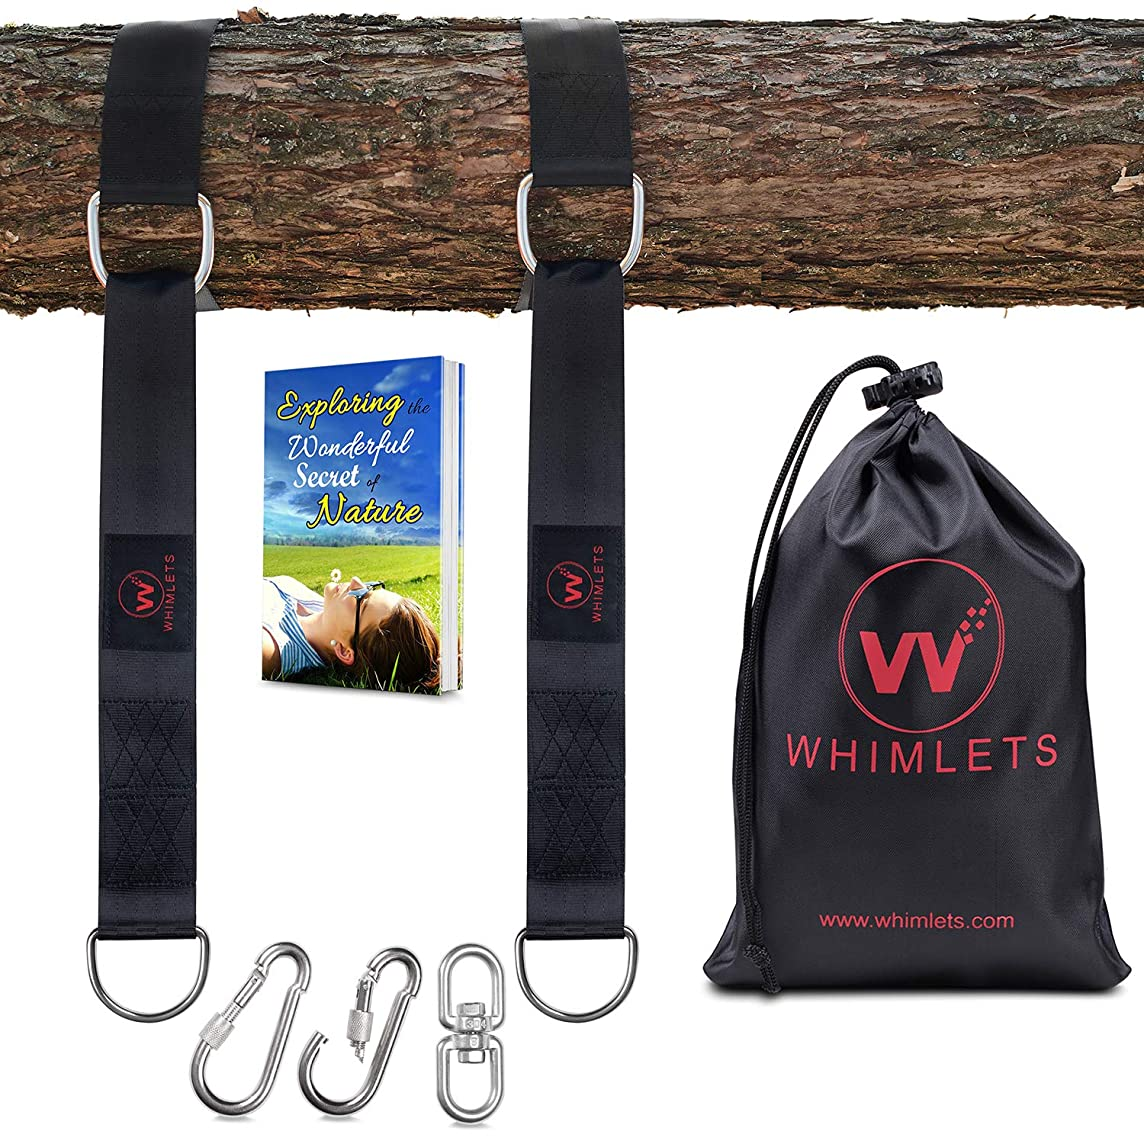 Whimlets Tree Swing Straps Hanging Kit 10ft Black - Two Straps Extra Long with Safer Lock Snap Carabiner Hooks - Perfect for Tree Swings & Hammocks – Easy and Fast Installation